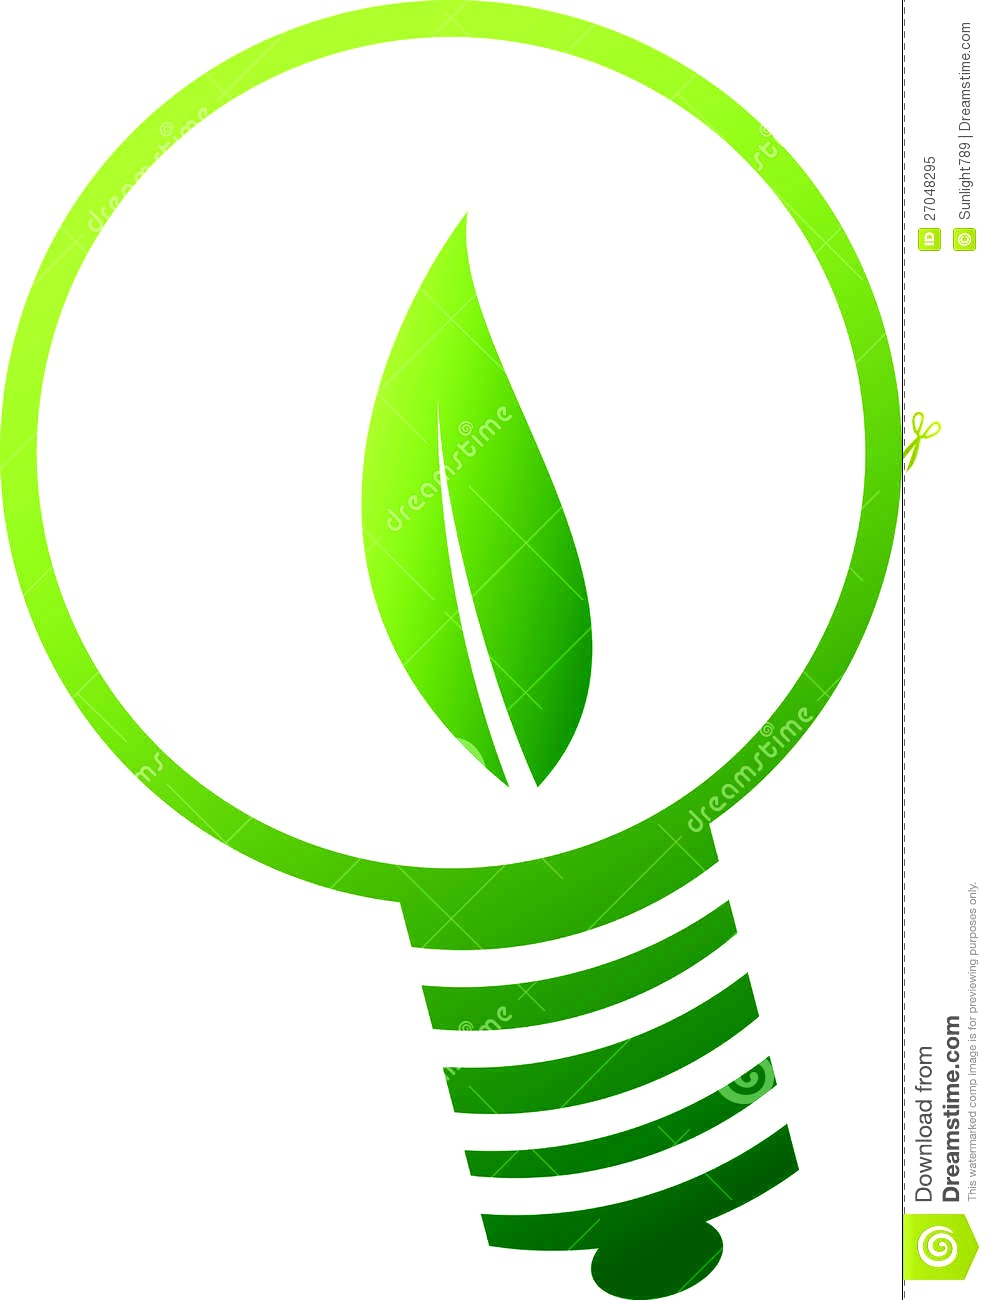 led and symbol clipart best